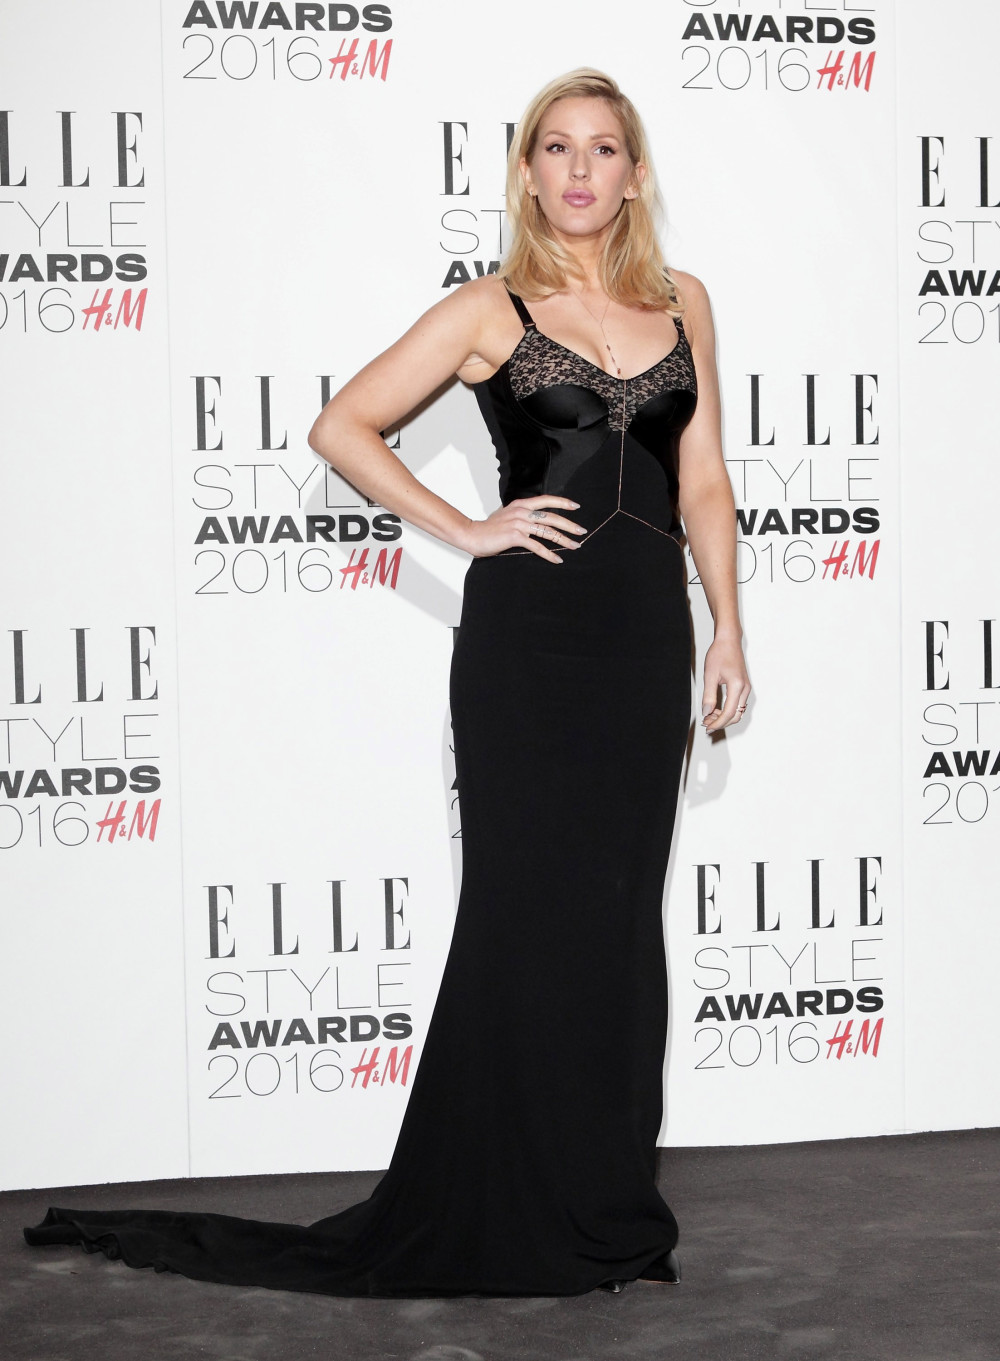 51977877 Celebrities attend The Elle Style Awards 2016 at tate britain on February 23, 2016 in London, England. Celebrities attend The Elle Style Awards 2016 at tate britain on February 23, 2016 in London, England. Pictured: Ellie Goulding FameFlynet, Inc - Beverly Hills, CA, USA - +1 (310) 505-9876 RESTRICTIONS APPLY: USA/CHINA ONLY